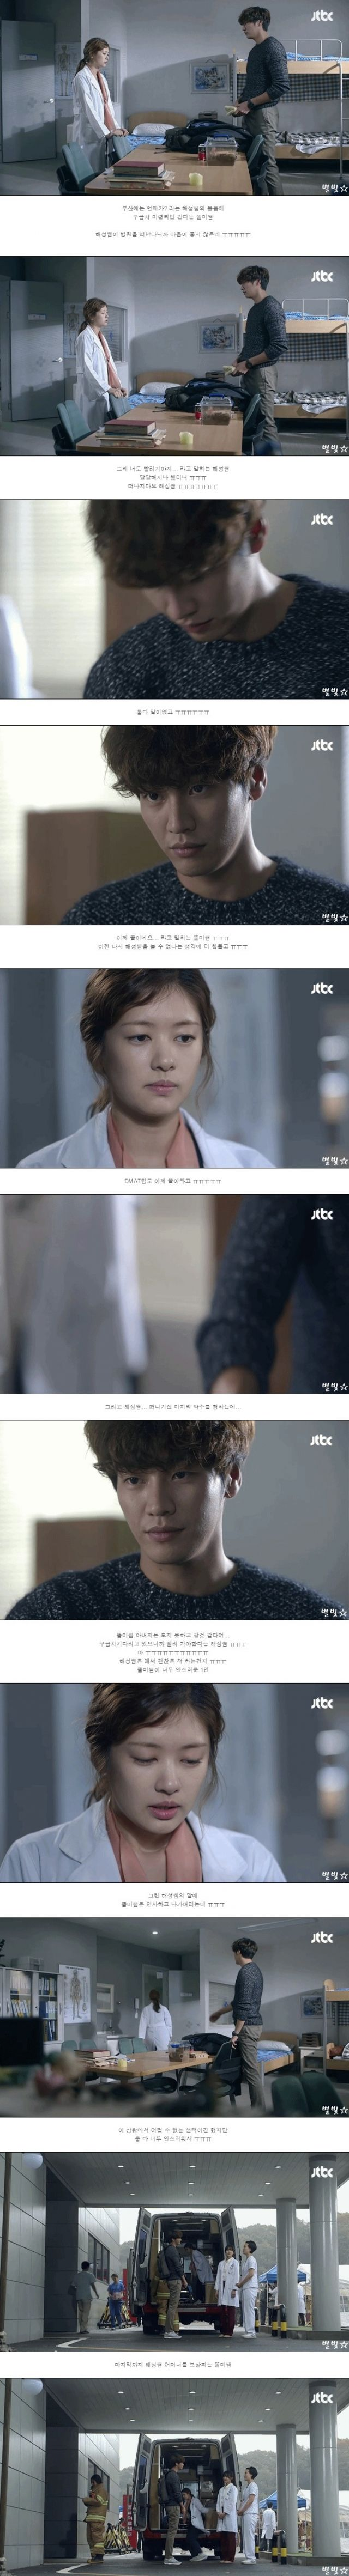 Spoiler] Added episodes 18 and 19 captures for the Korean